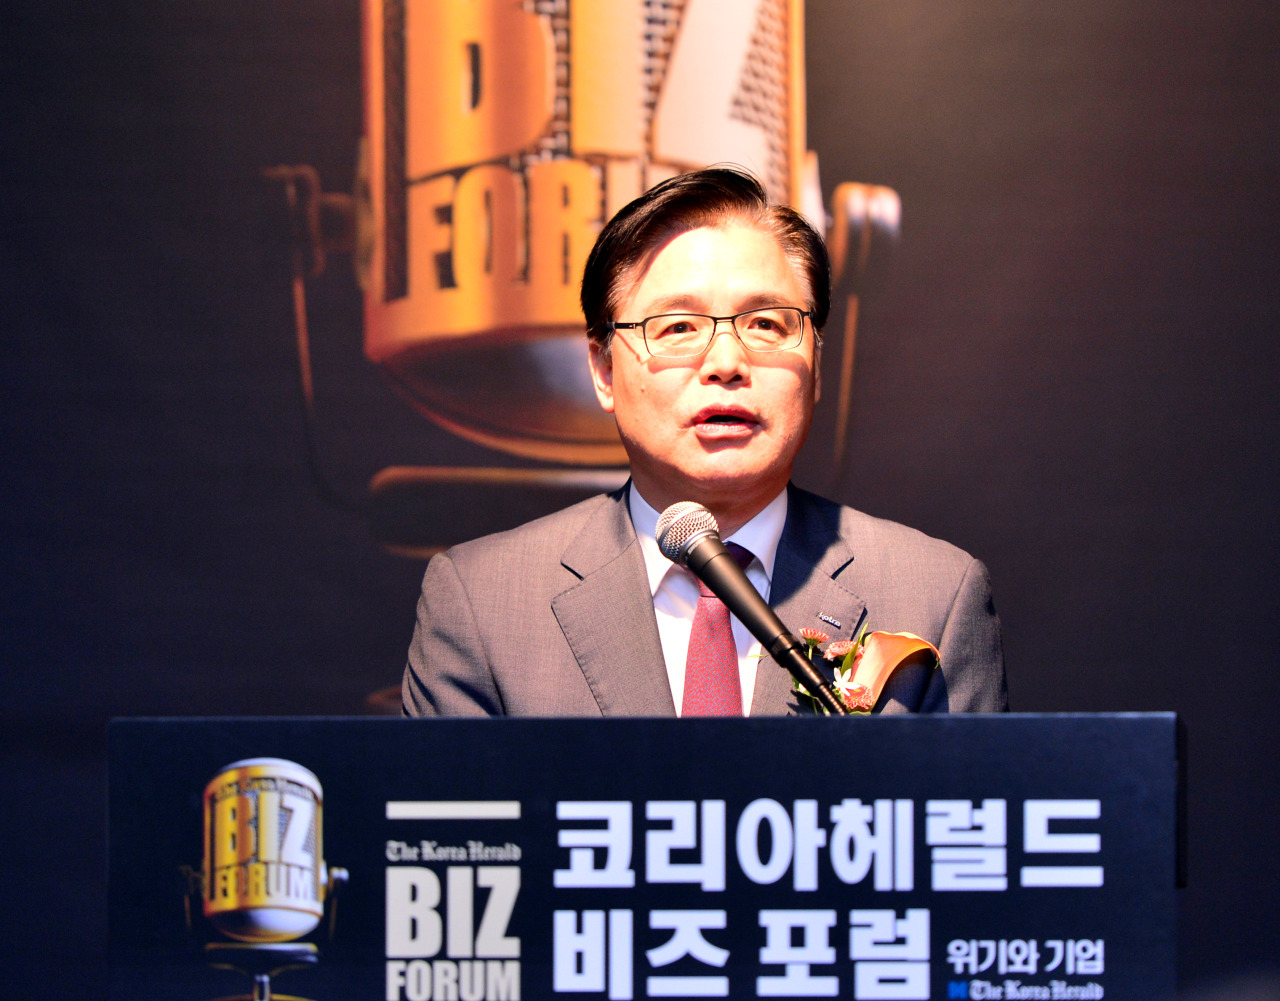 KOTRA CEO Kwon Pyung-oh delivers a congratulatory speech at The Korea Herald's Biz Forum in Seoul on Friday. (Photo by Park Hyun-koo / The Korea Herald)